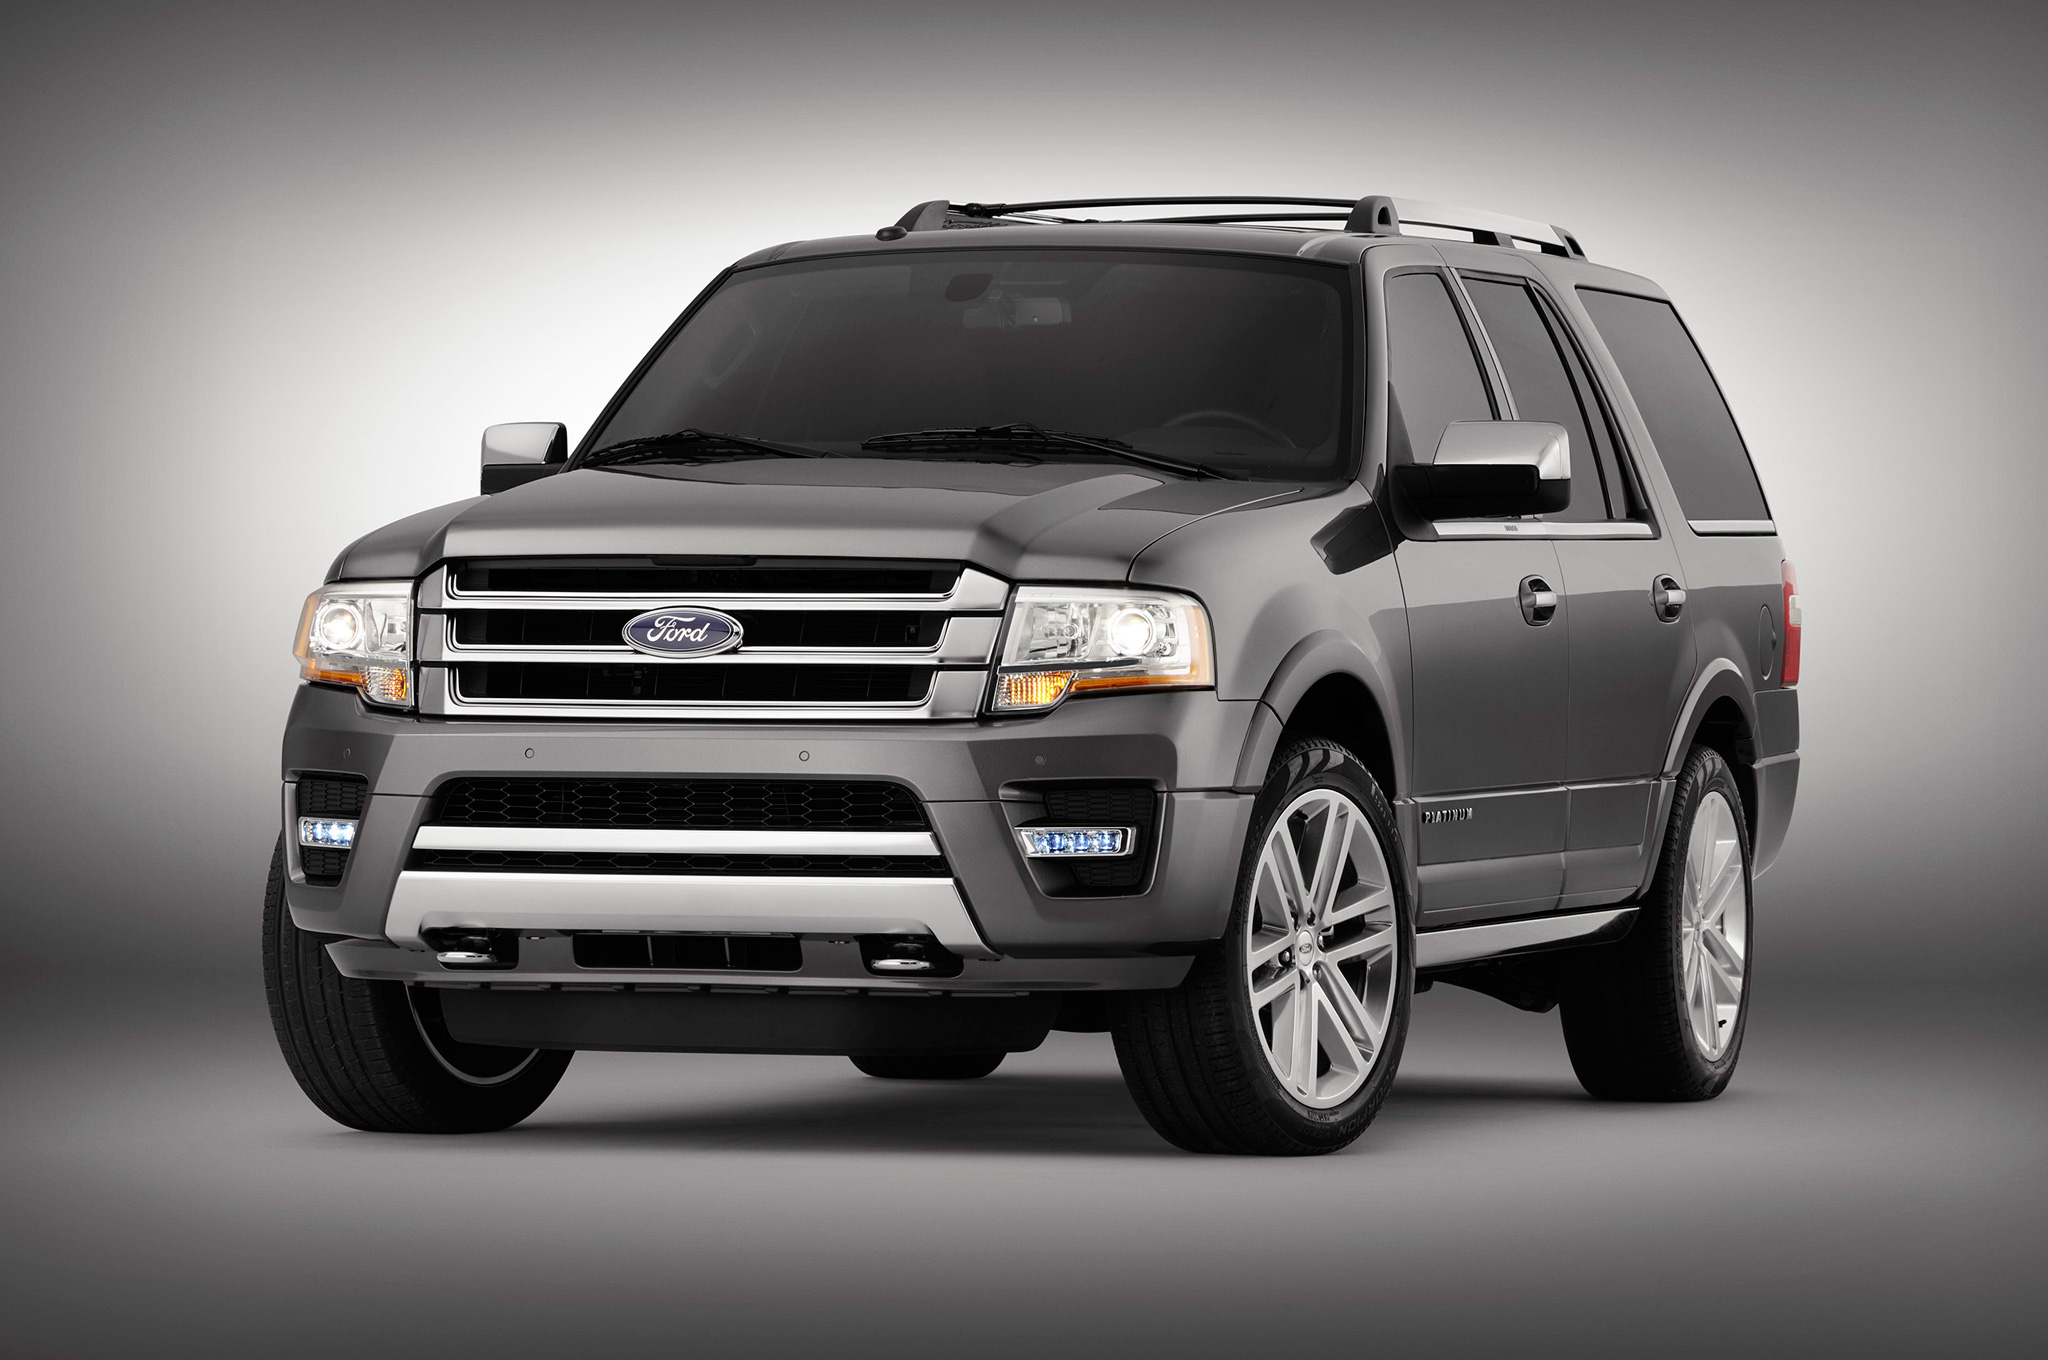 2015 Ford Expedition #8